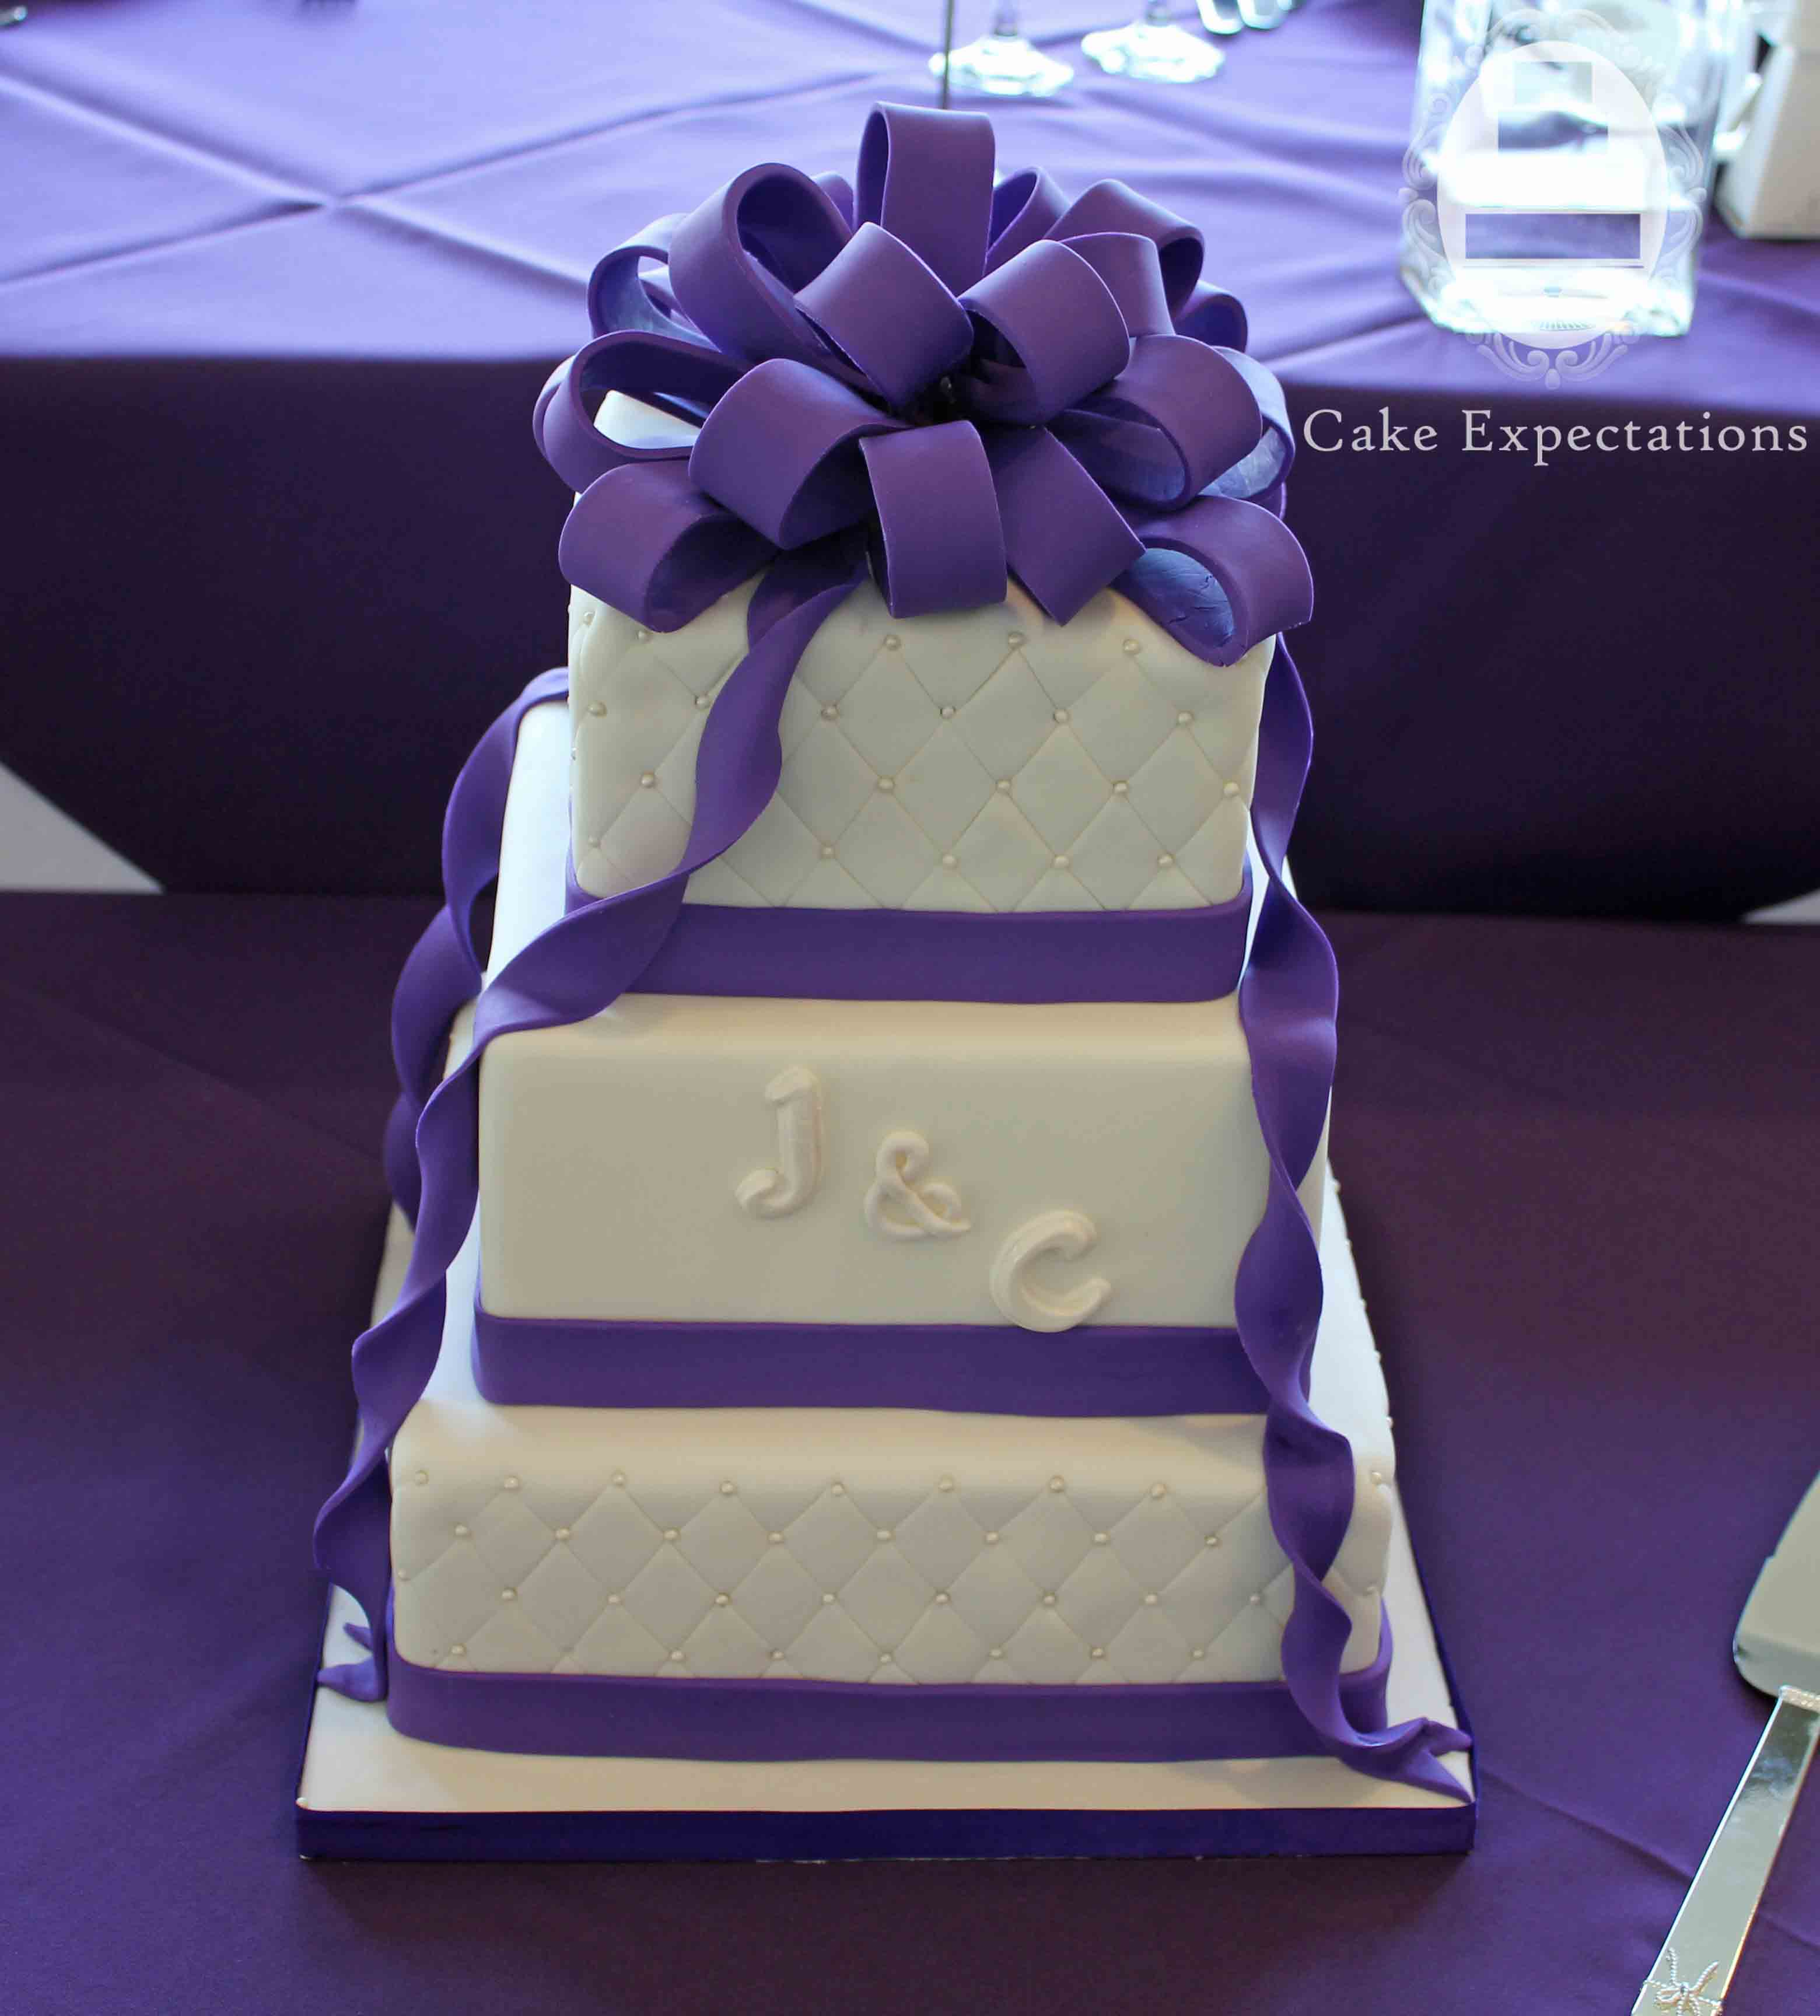 Cake Expectations Www Cakeexpectations Ca